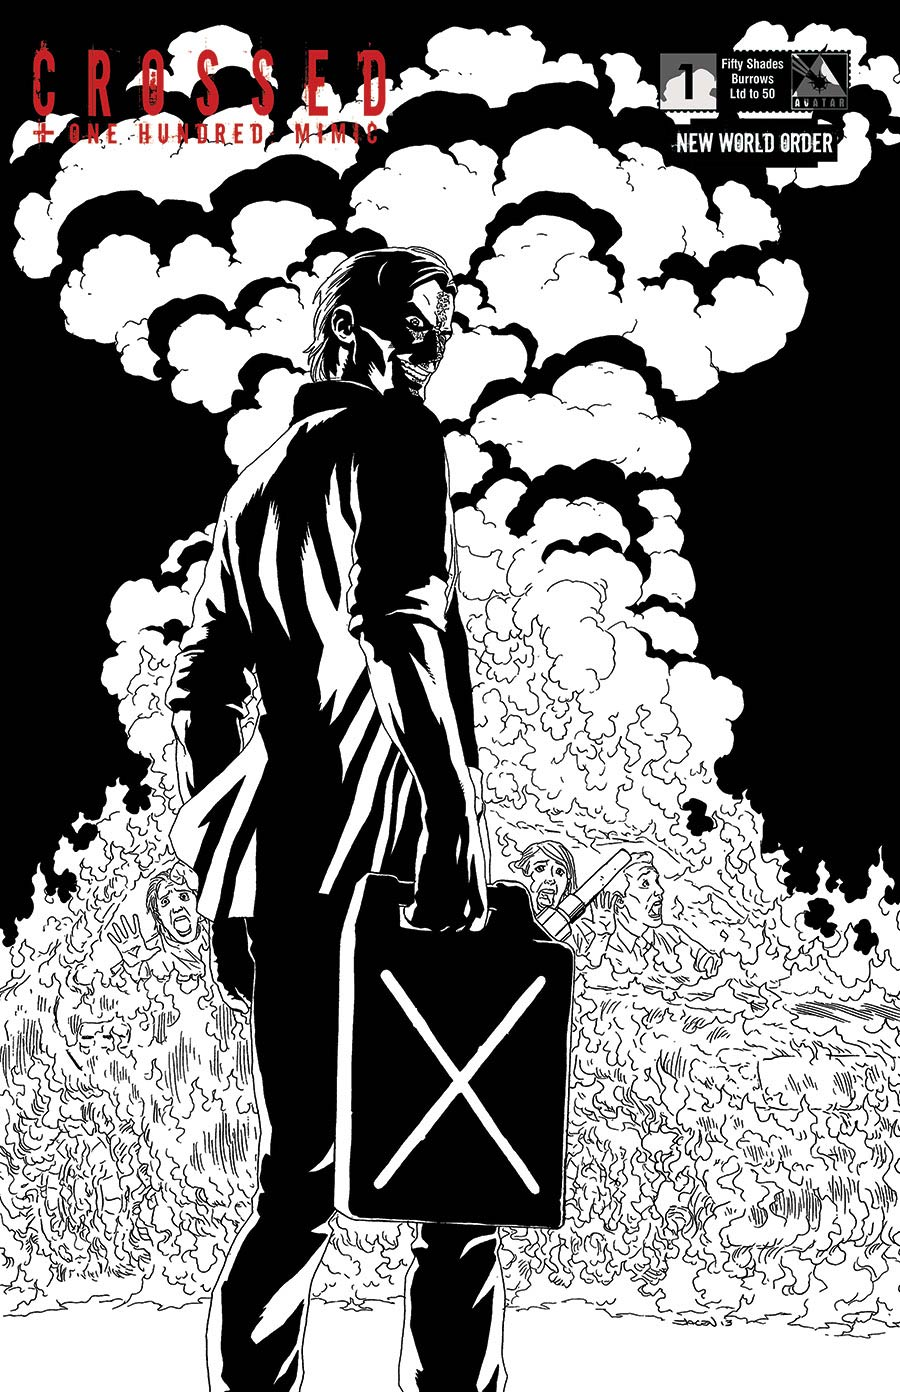 Crossed Plus 100 Mimic #1 Cover R NWO Fifty Shades Jacen Burrows Cover